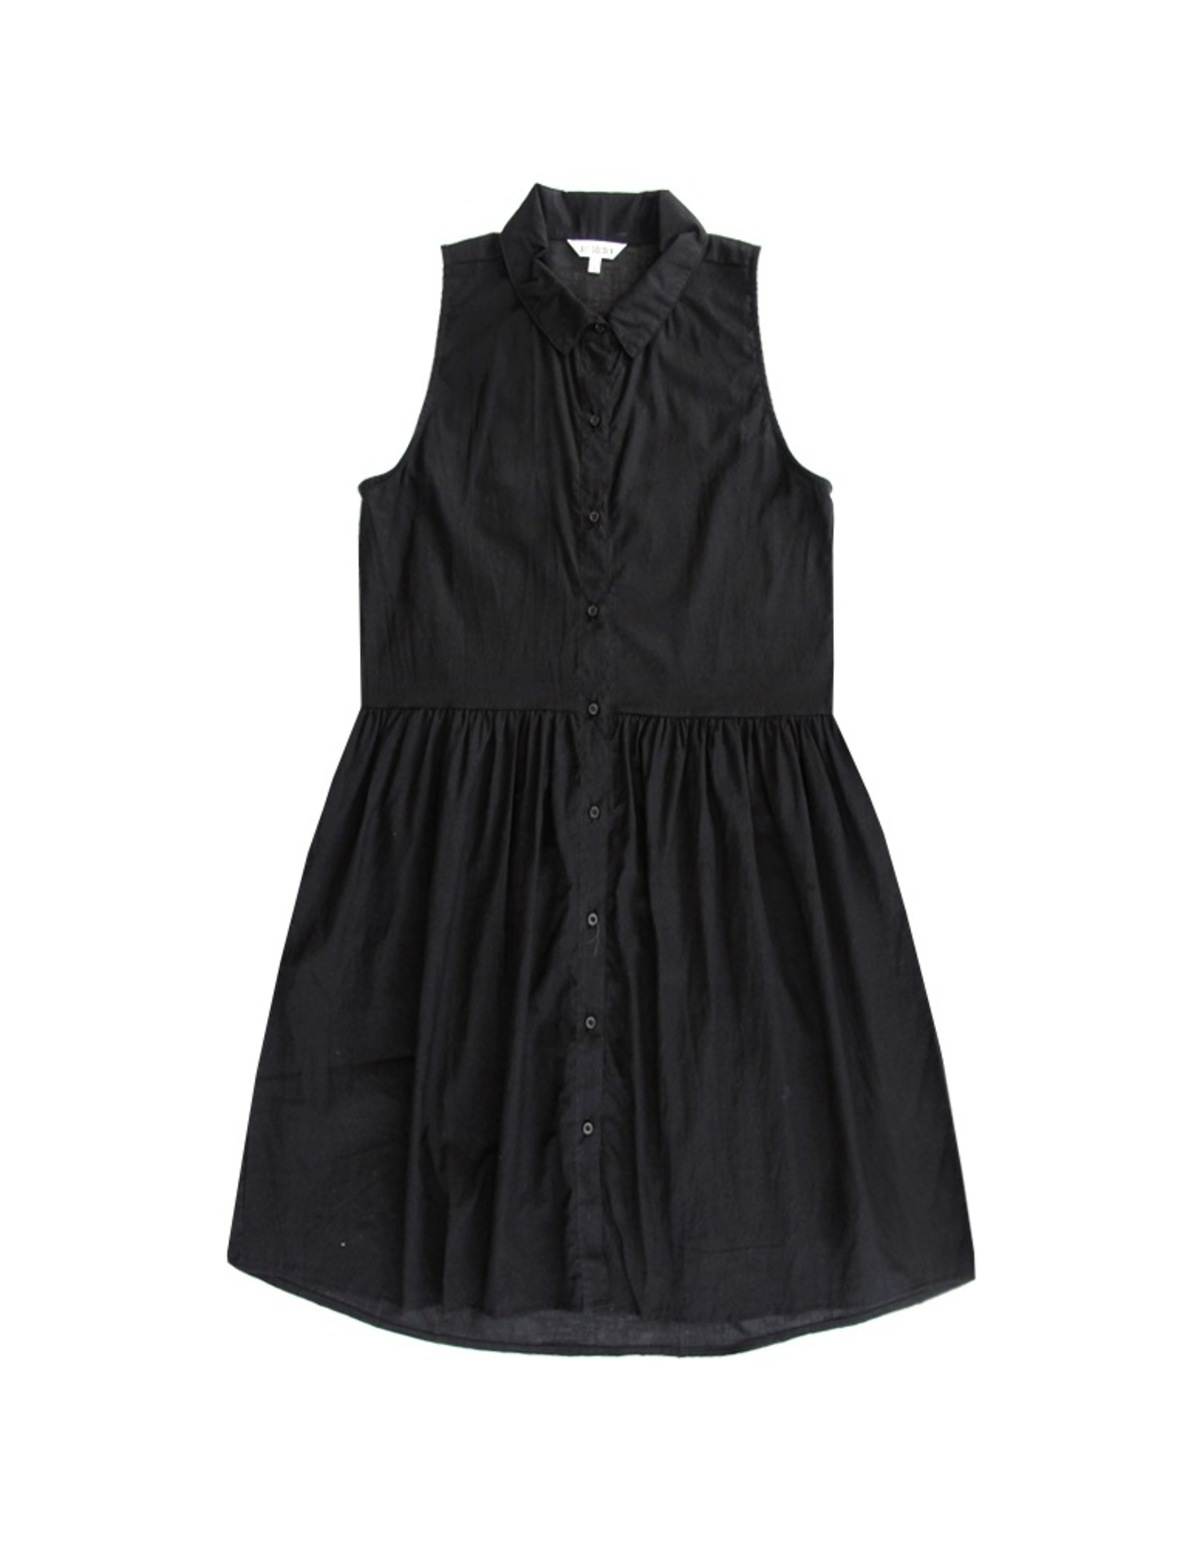 Buy Free People Women's Black Button Up Dress. Similar products also available. SALE now on!Price: $